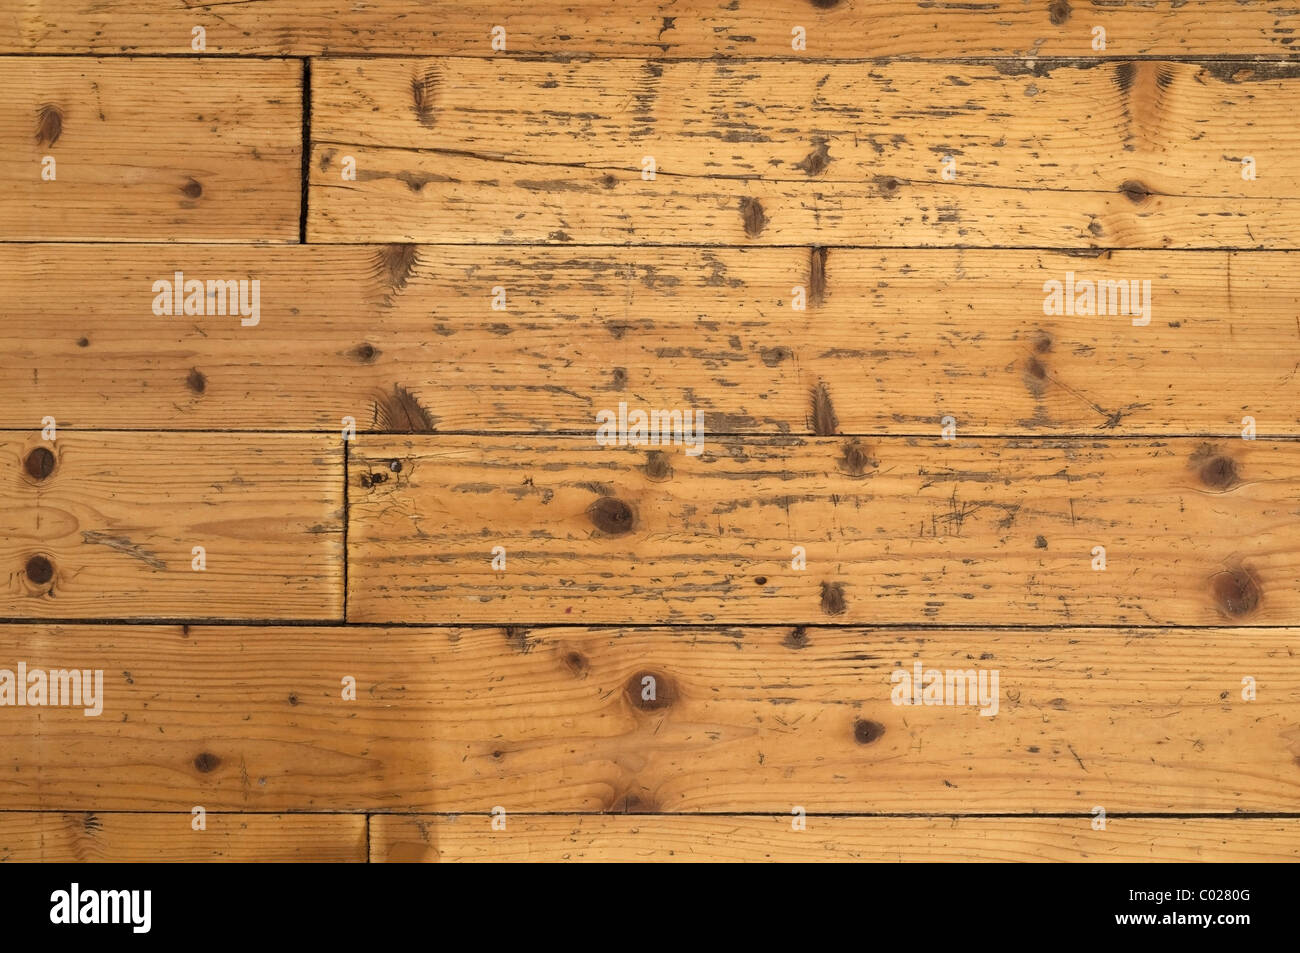 Old wood floor, background - Stock Image